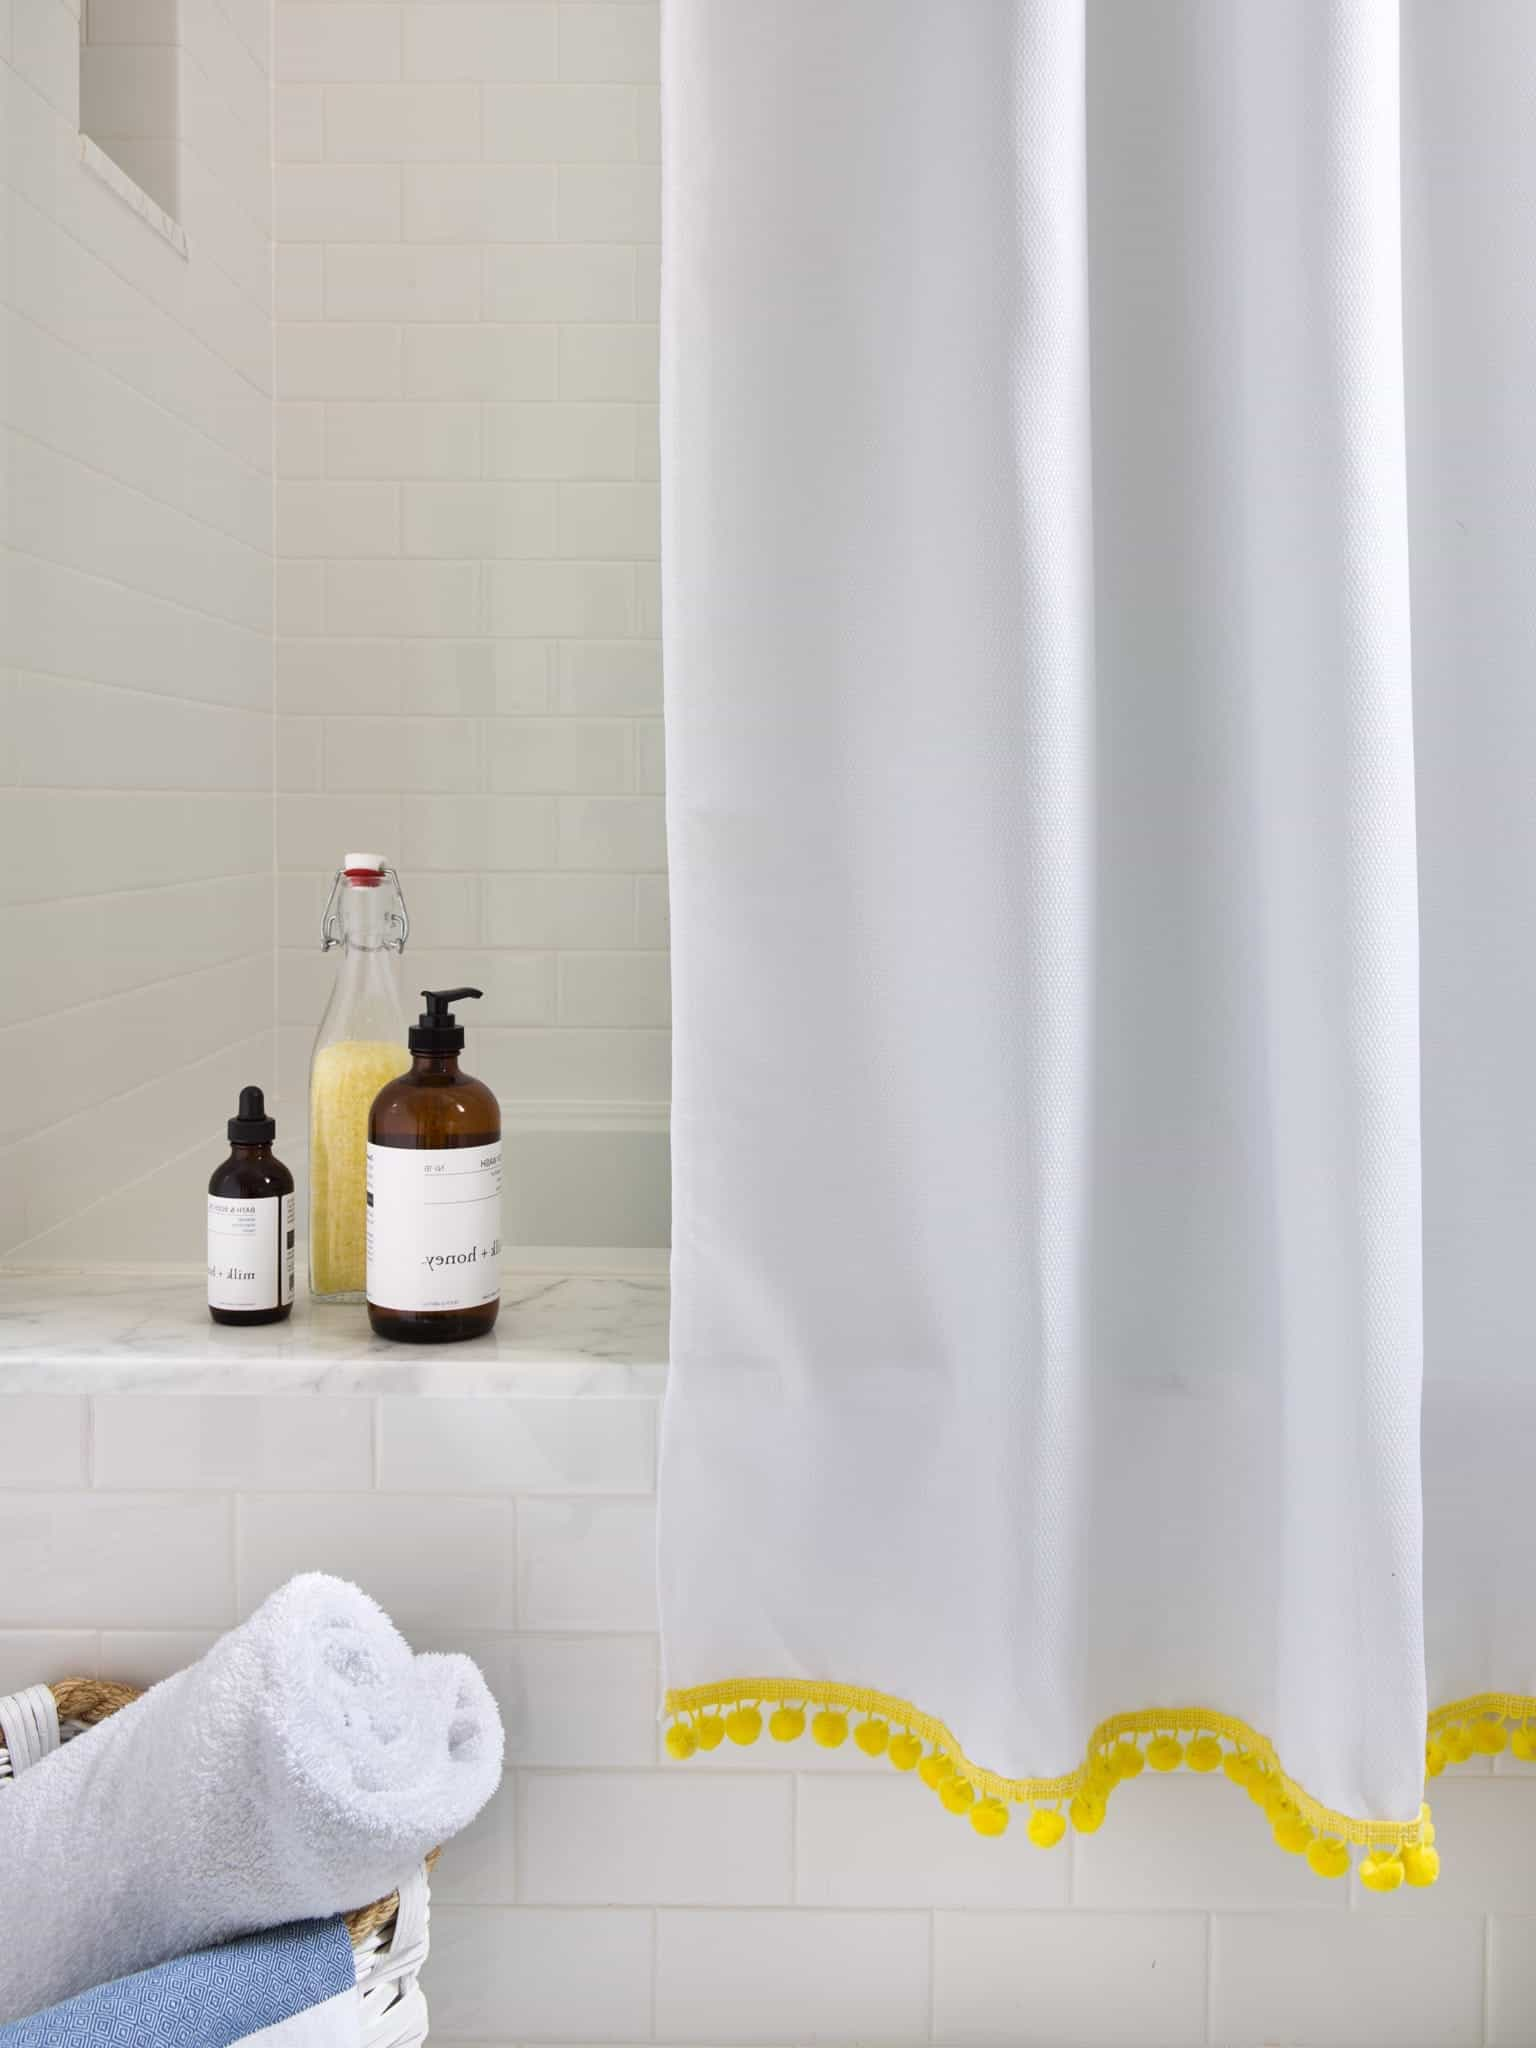 White Shower Curtain With Bright Yellow Trim (View 4 of 14)